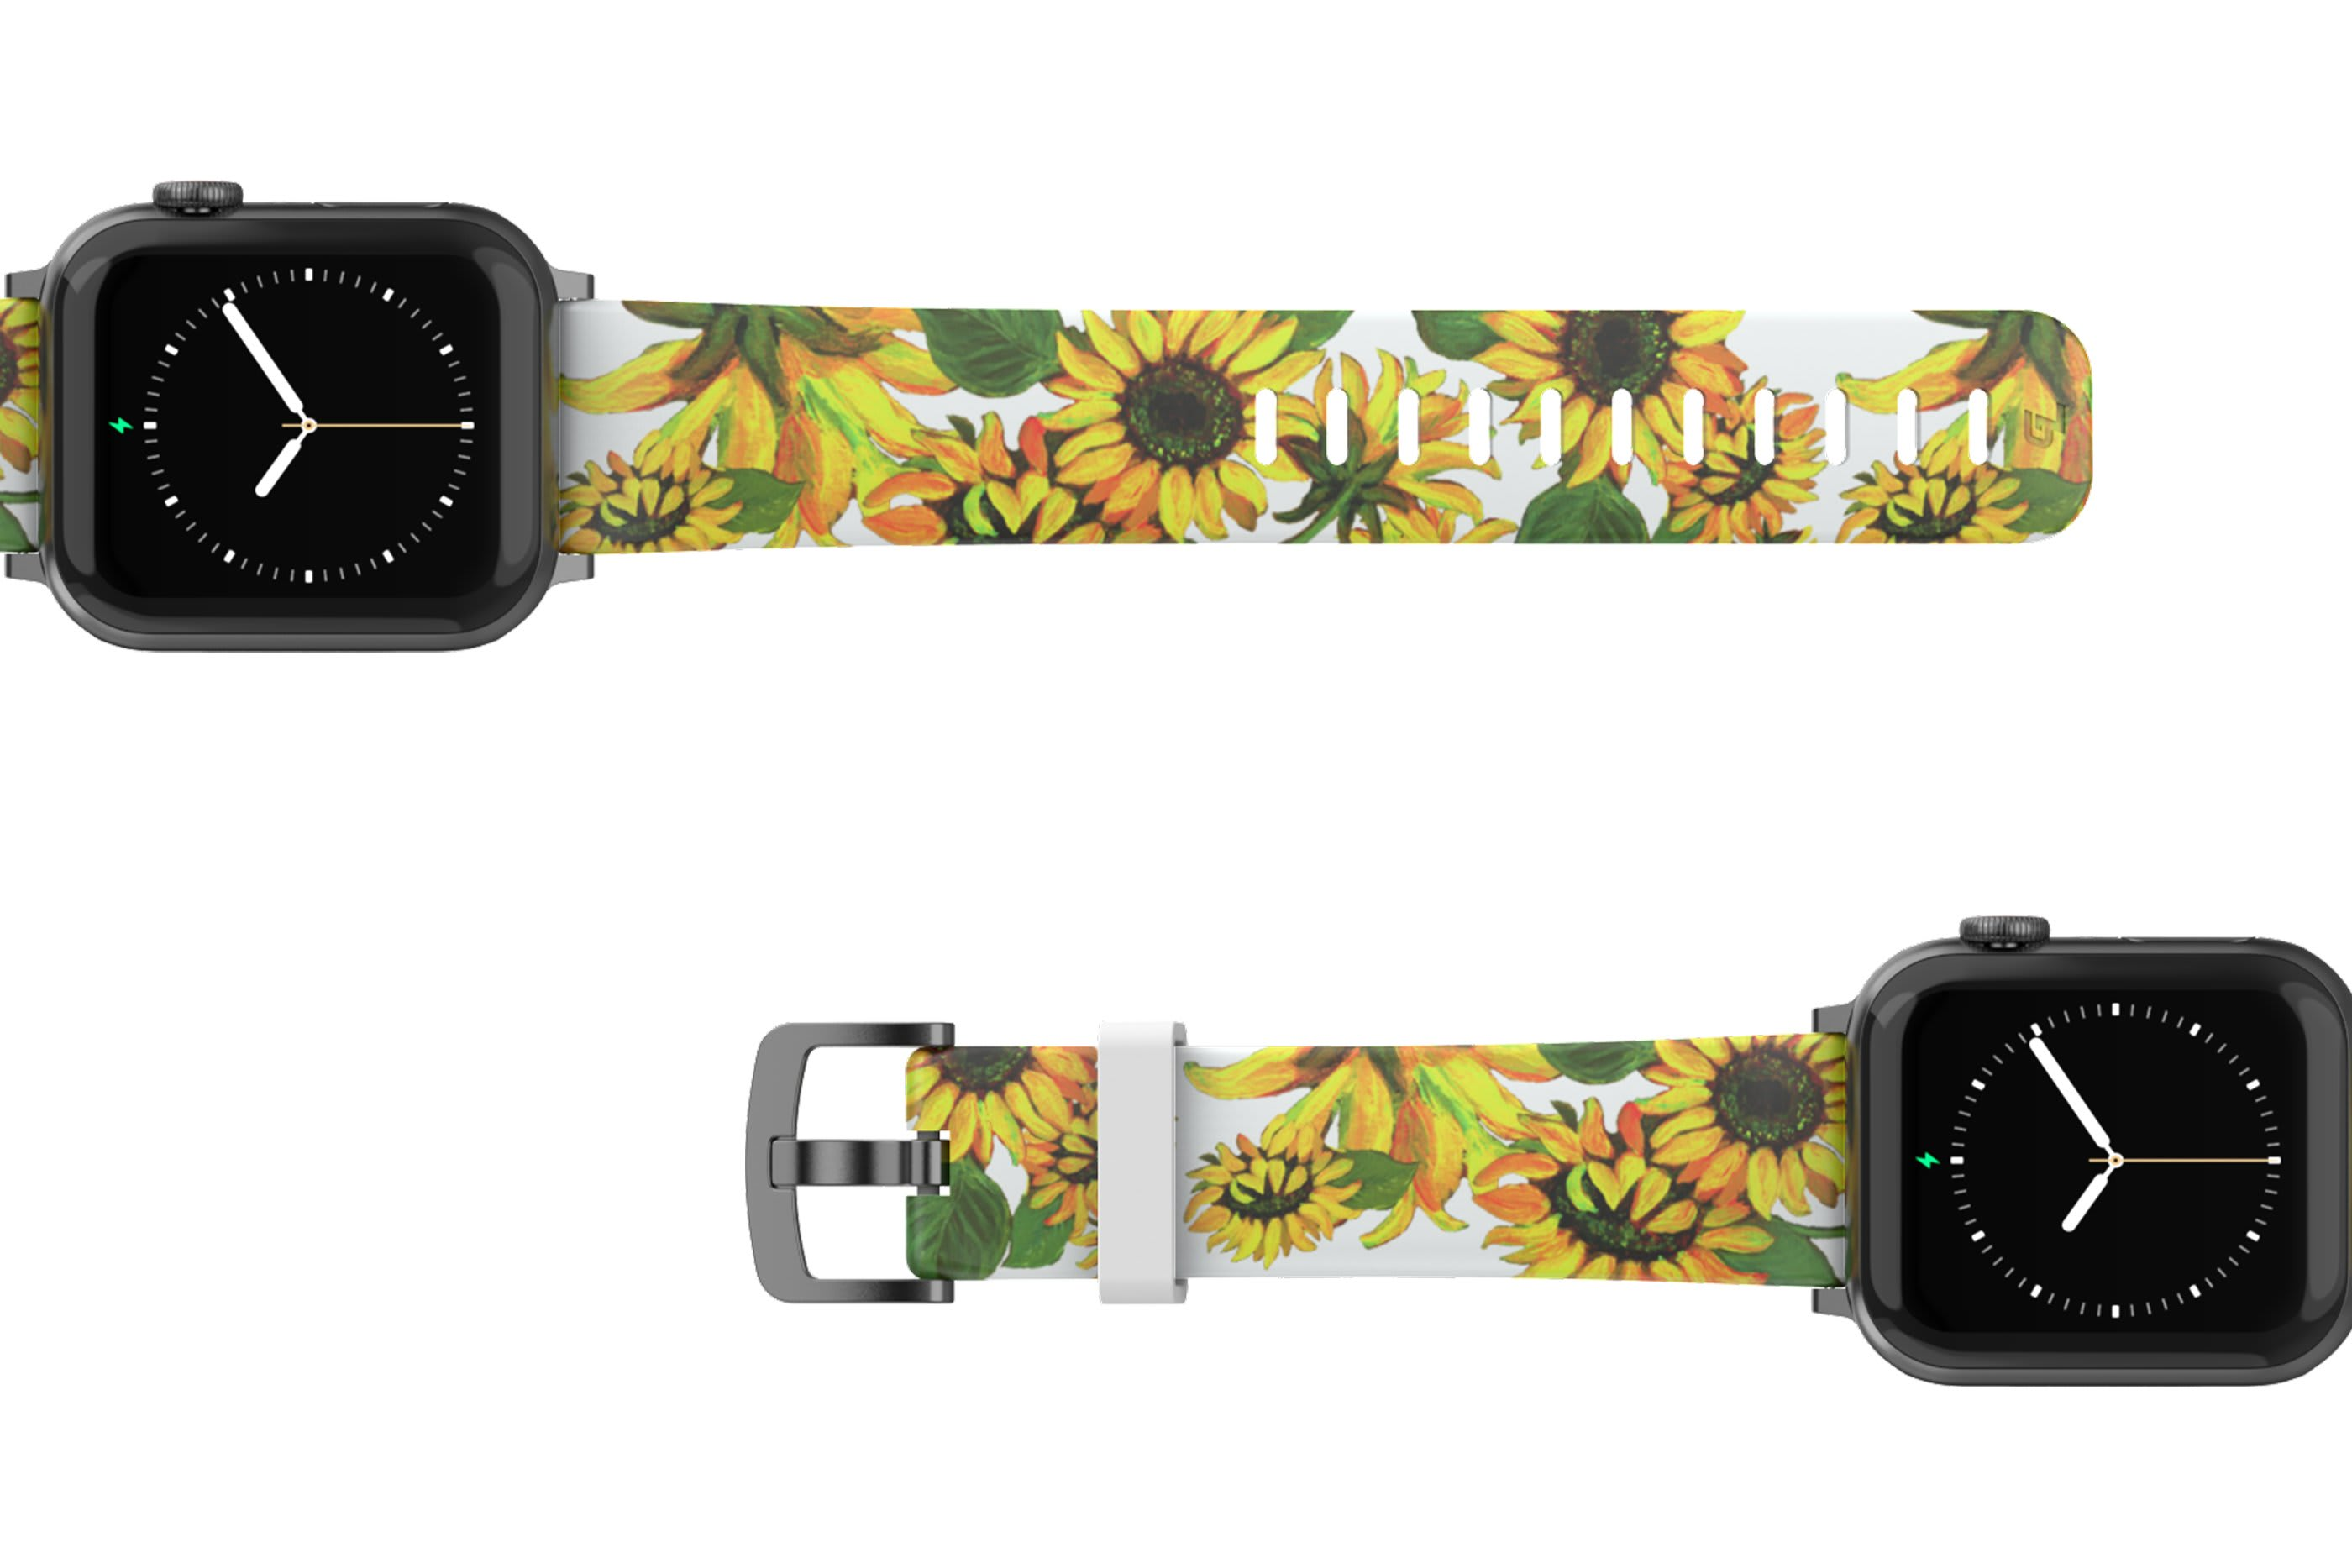 Sunflower Apple Watch Band with gray hardware viewed top down